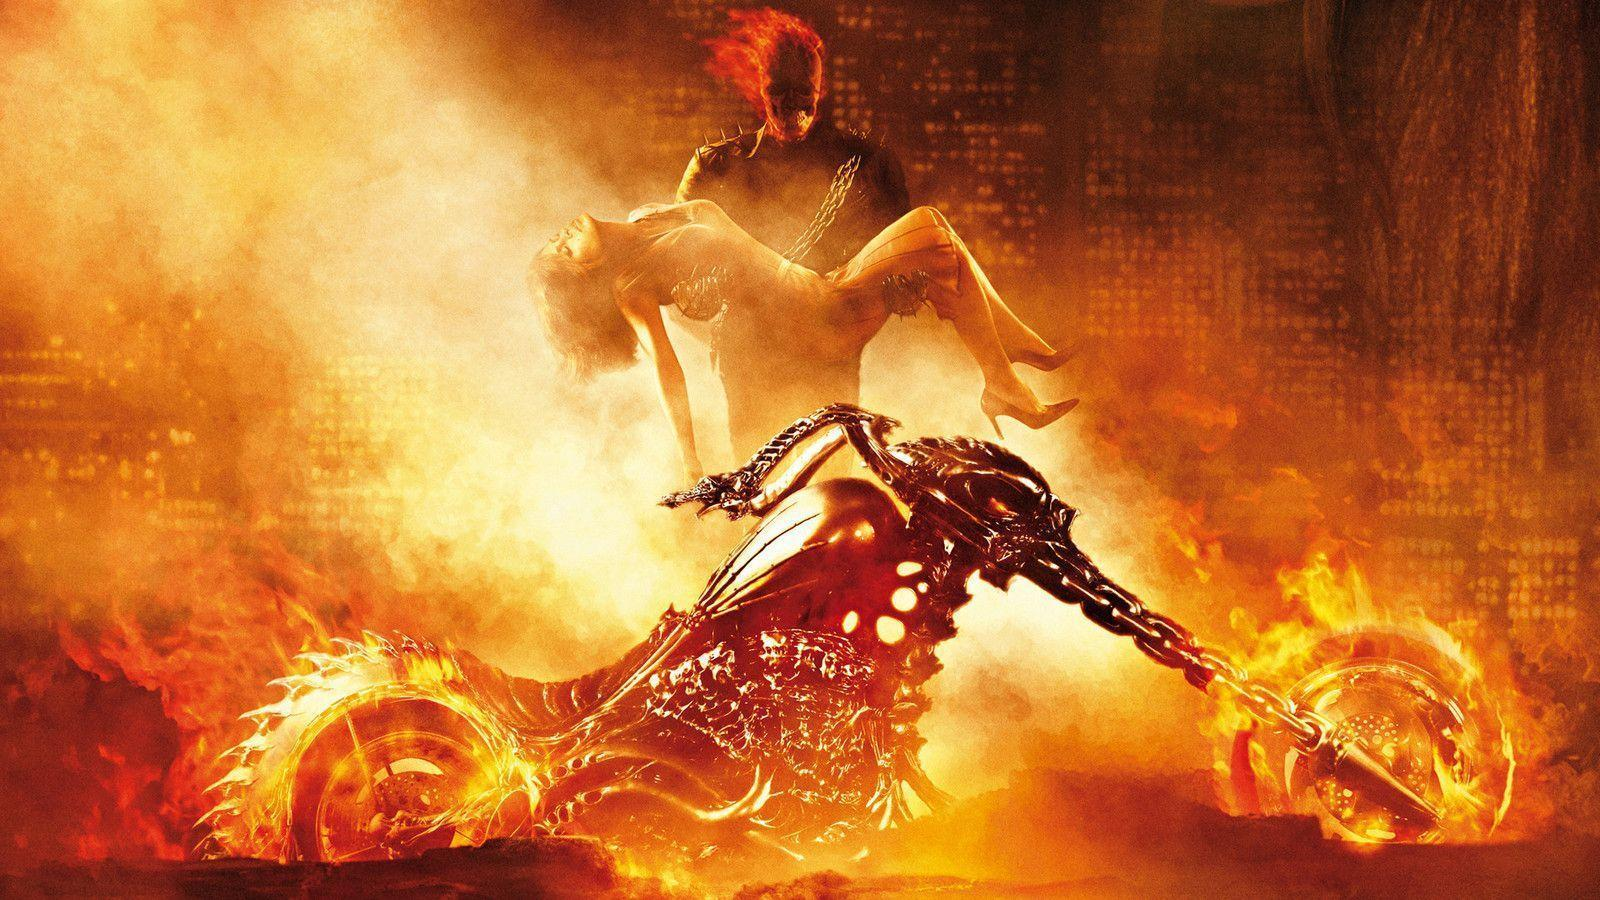 HQ Ghost Rider Wallpaper, HQ Backgrounds